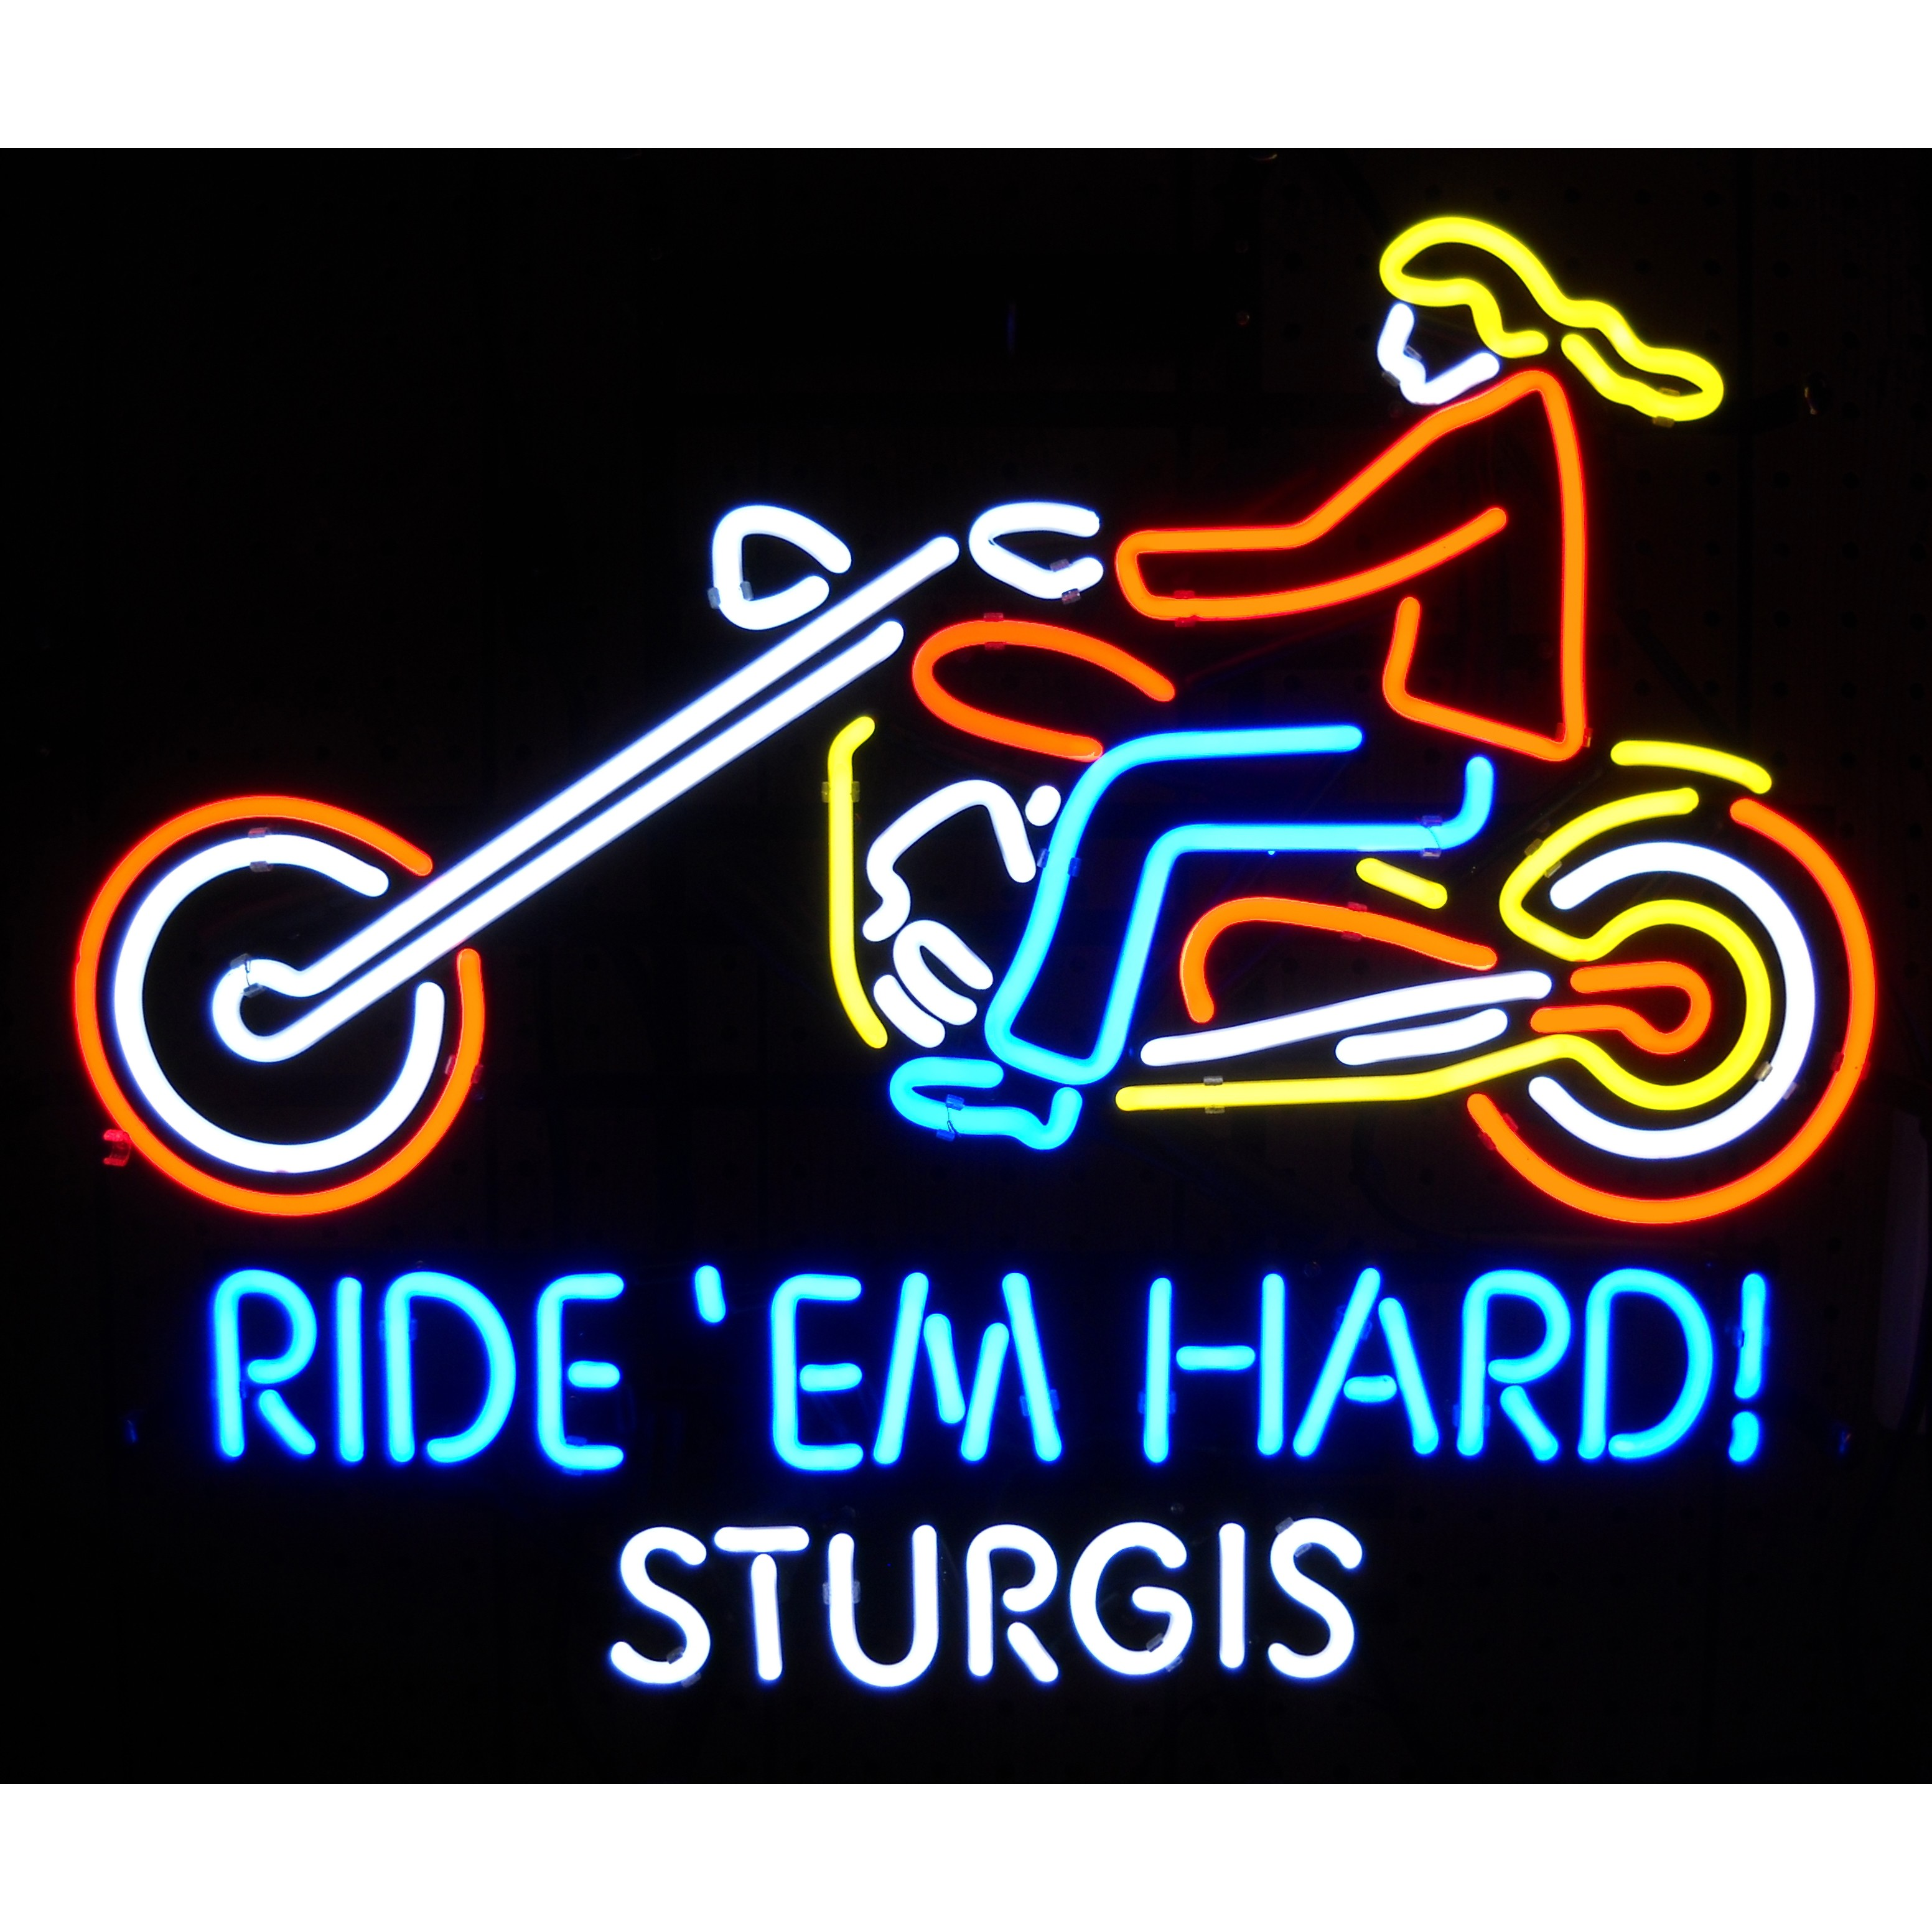 RIDE EM HARD STURGIS MOTOTCYLE NEON SIGN